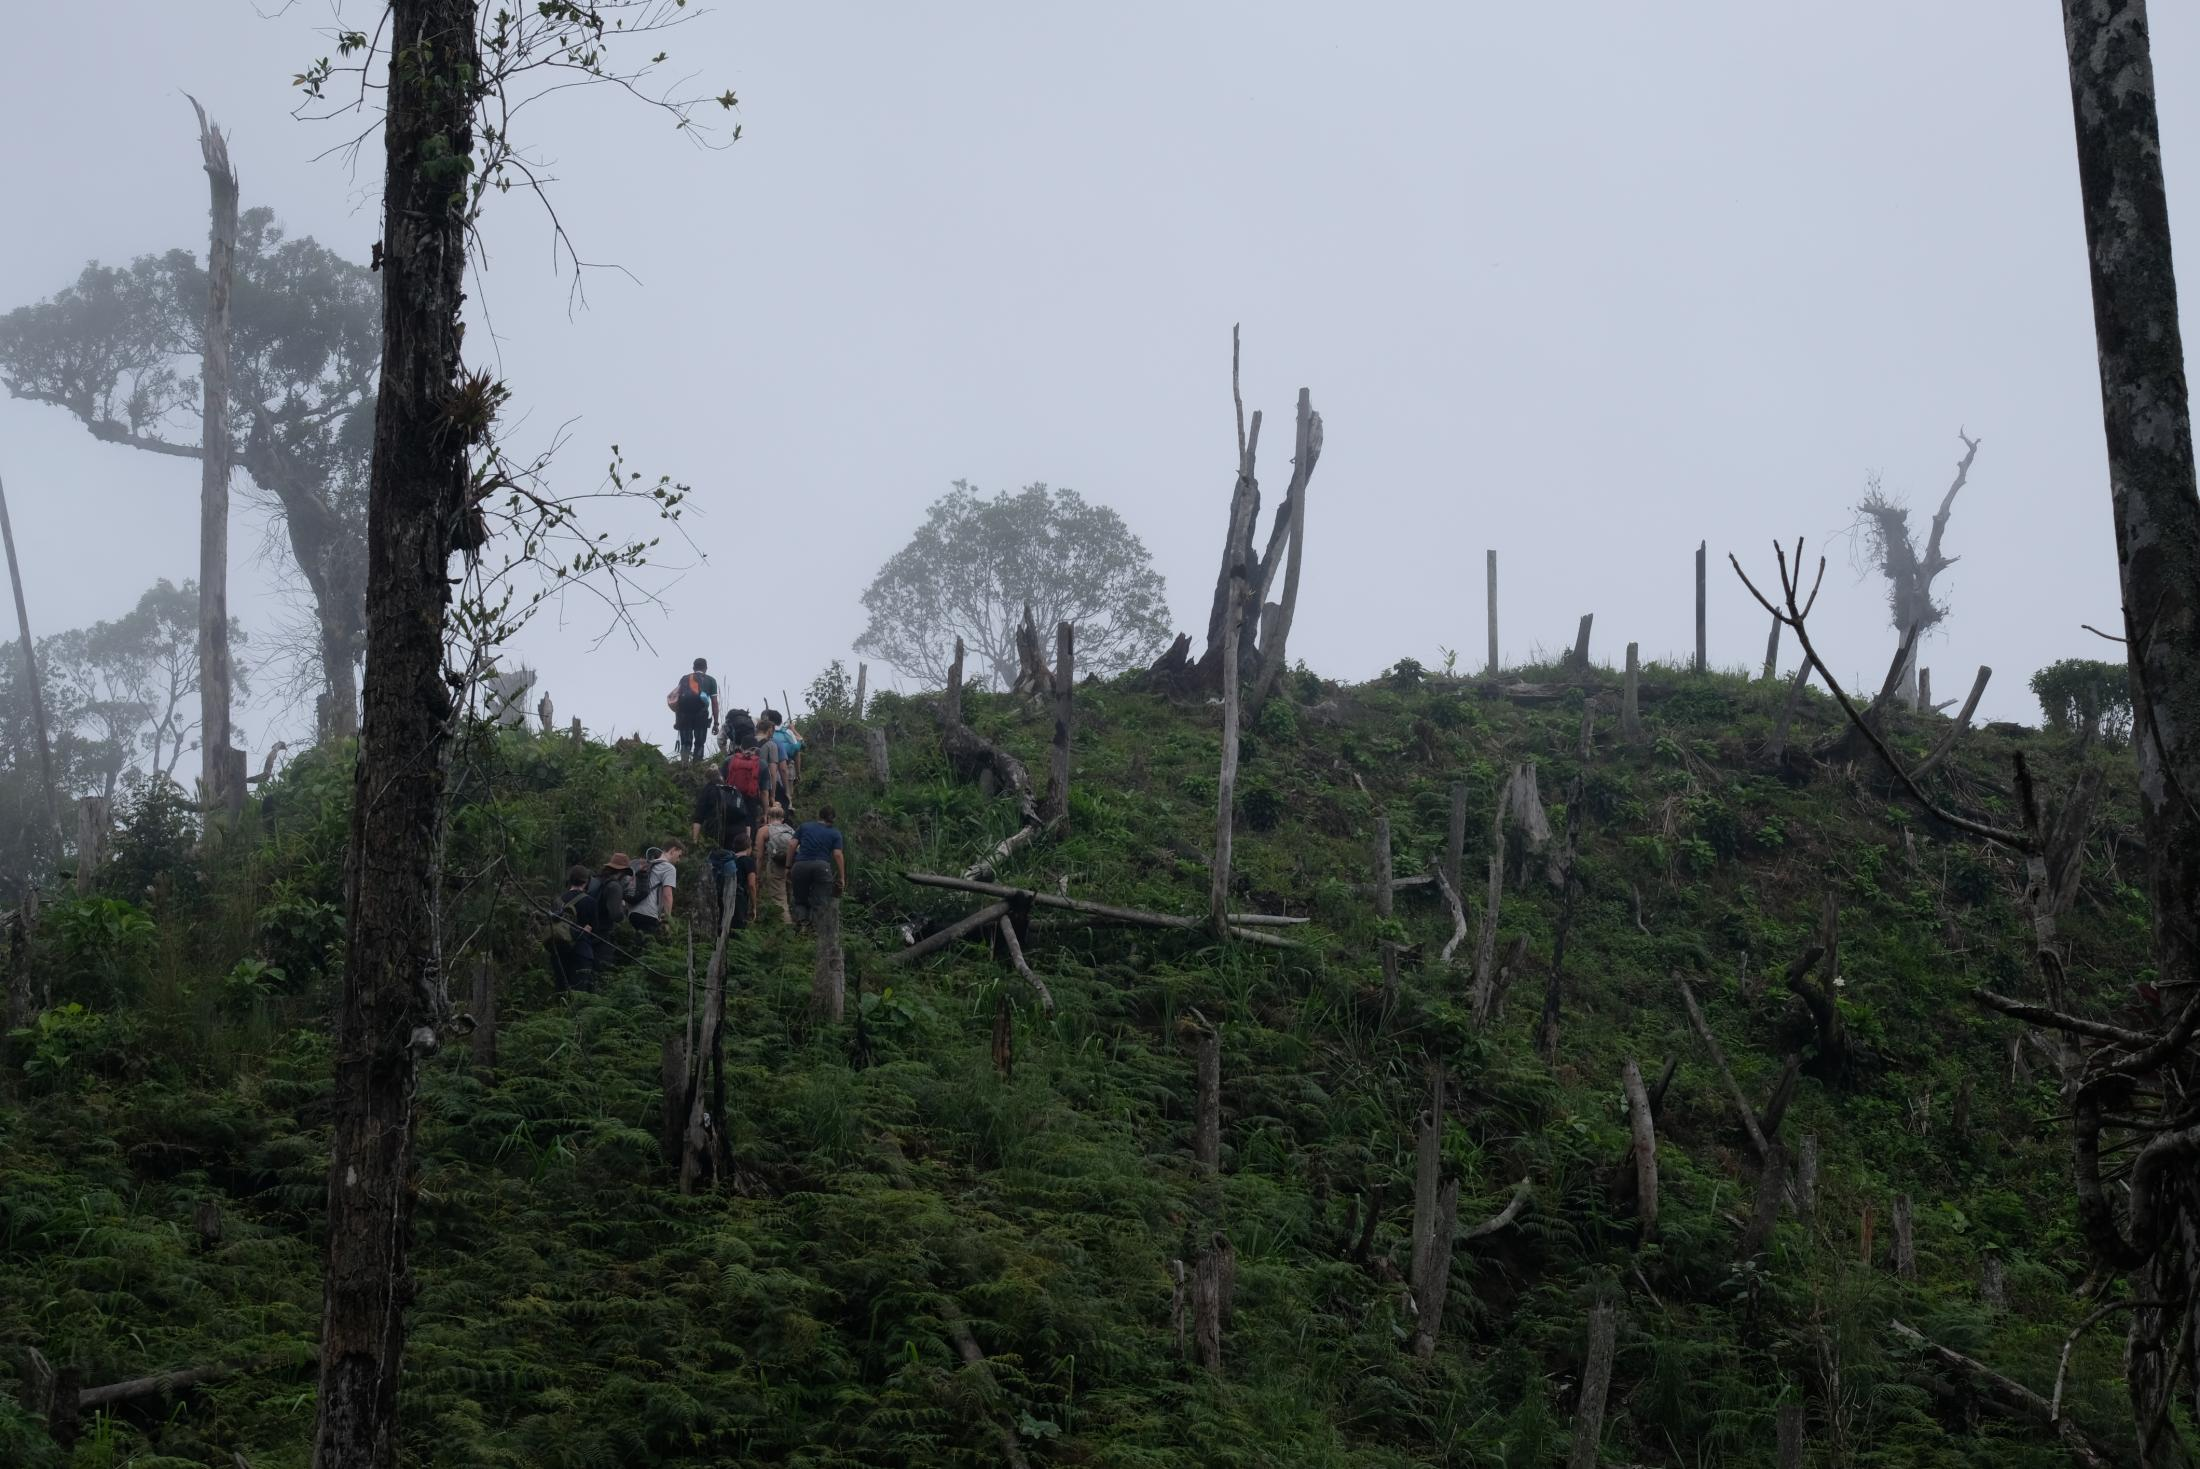 Newly deforested patches that are really close to the Core of the forest. It felt like walking on a graveyard.